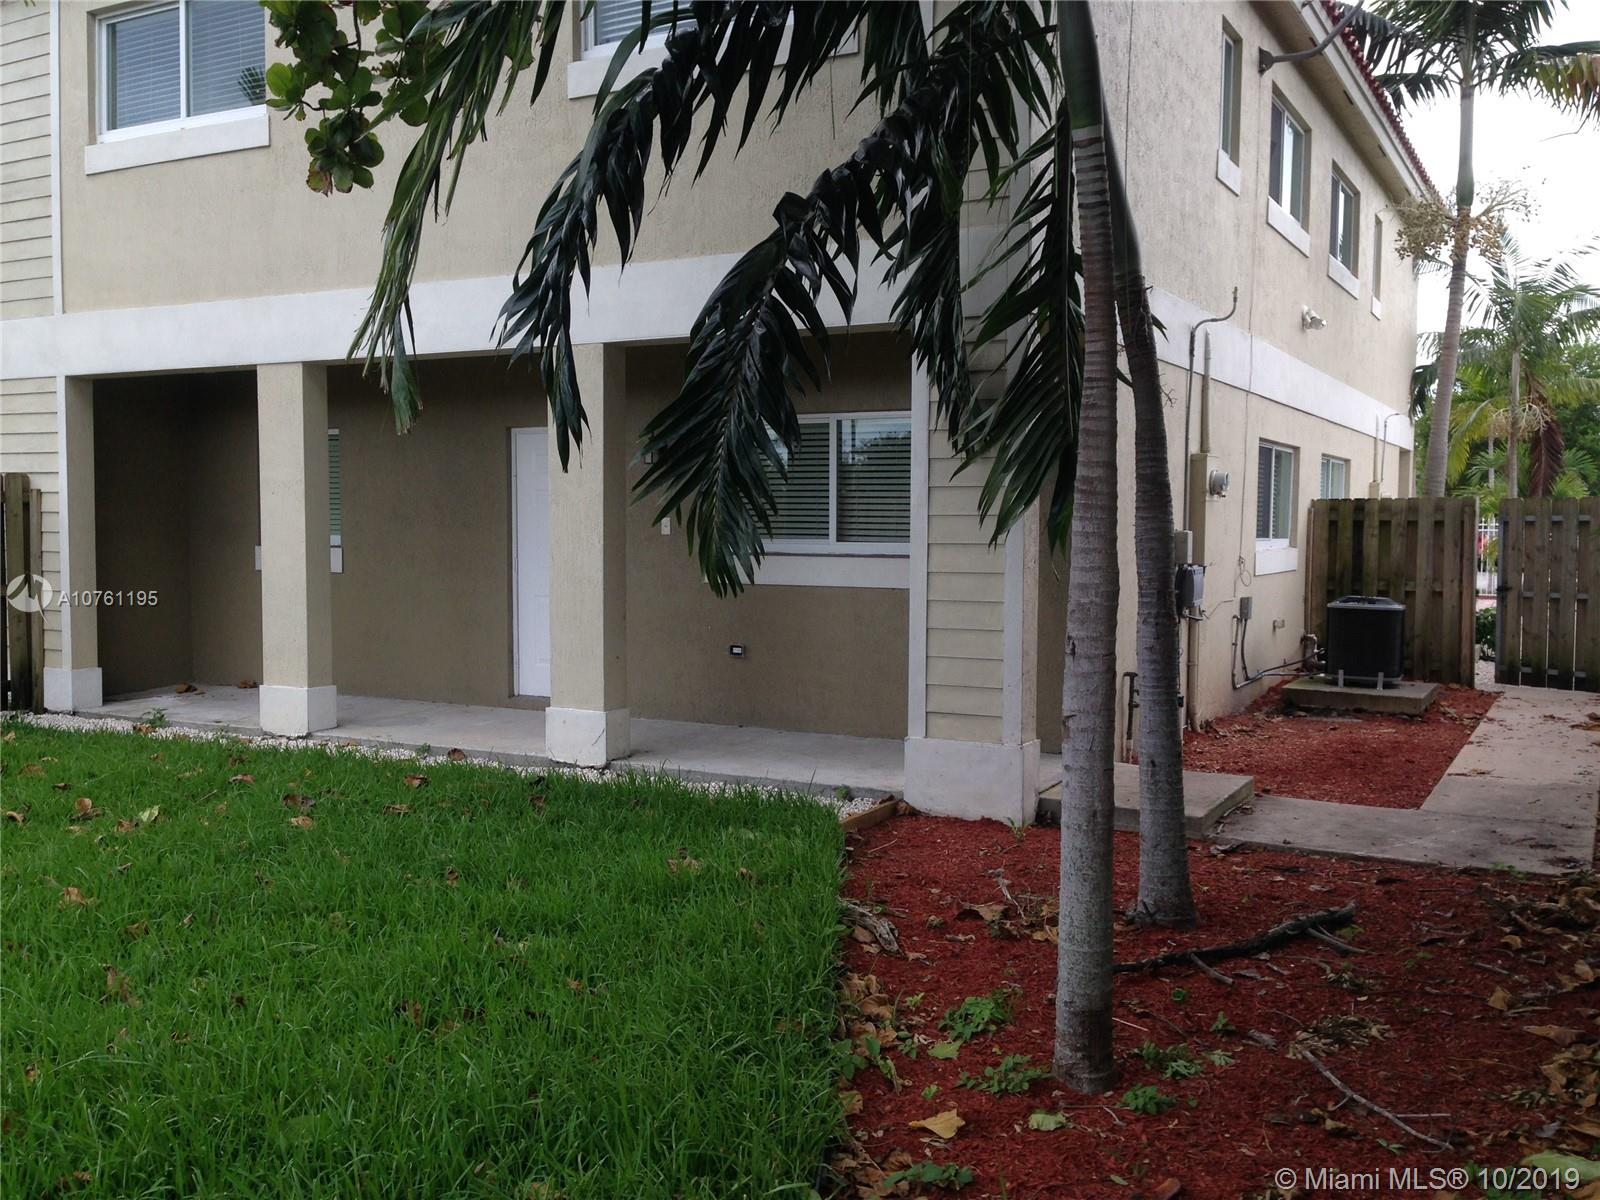 This property  has  4 , two  story townhomes with 4  separate  folio numbers, each unit has his own water ,sewer  and electric connections and can be sold separately in full market price .  property  was  built in  2008 and was partially  renovated with wood floors on 2nd floor,   solid  investment. in an upcoming and growing area,  close to downtown Ft Lauderdale , this neighborhood is changing fast ! , see comparable sales on 1st and 2nd ave !   